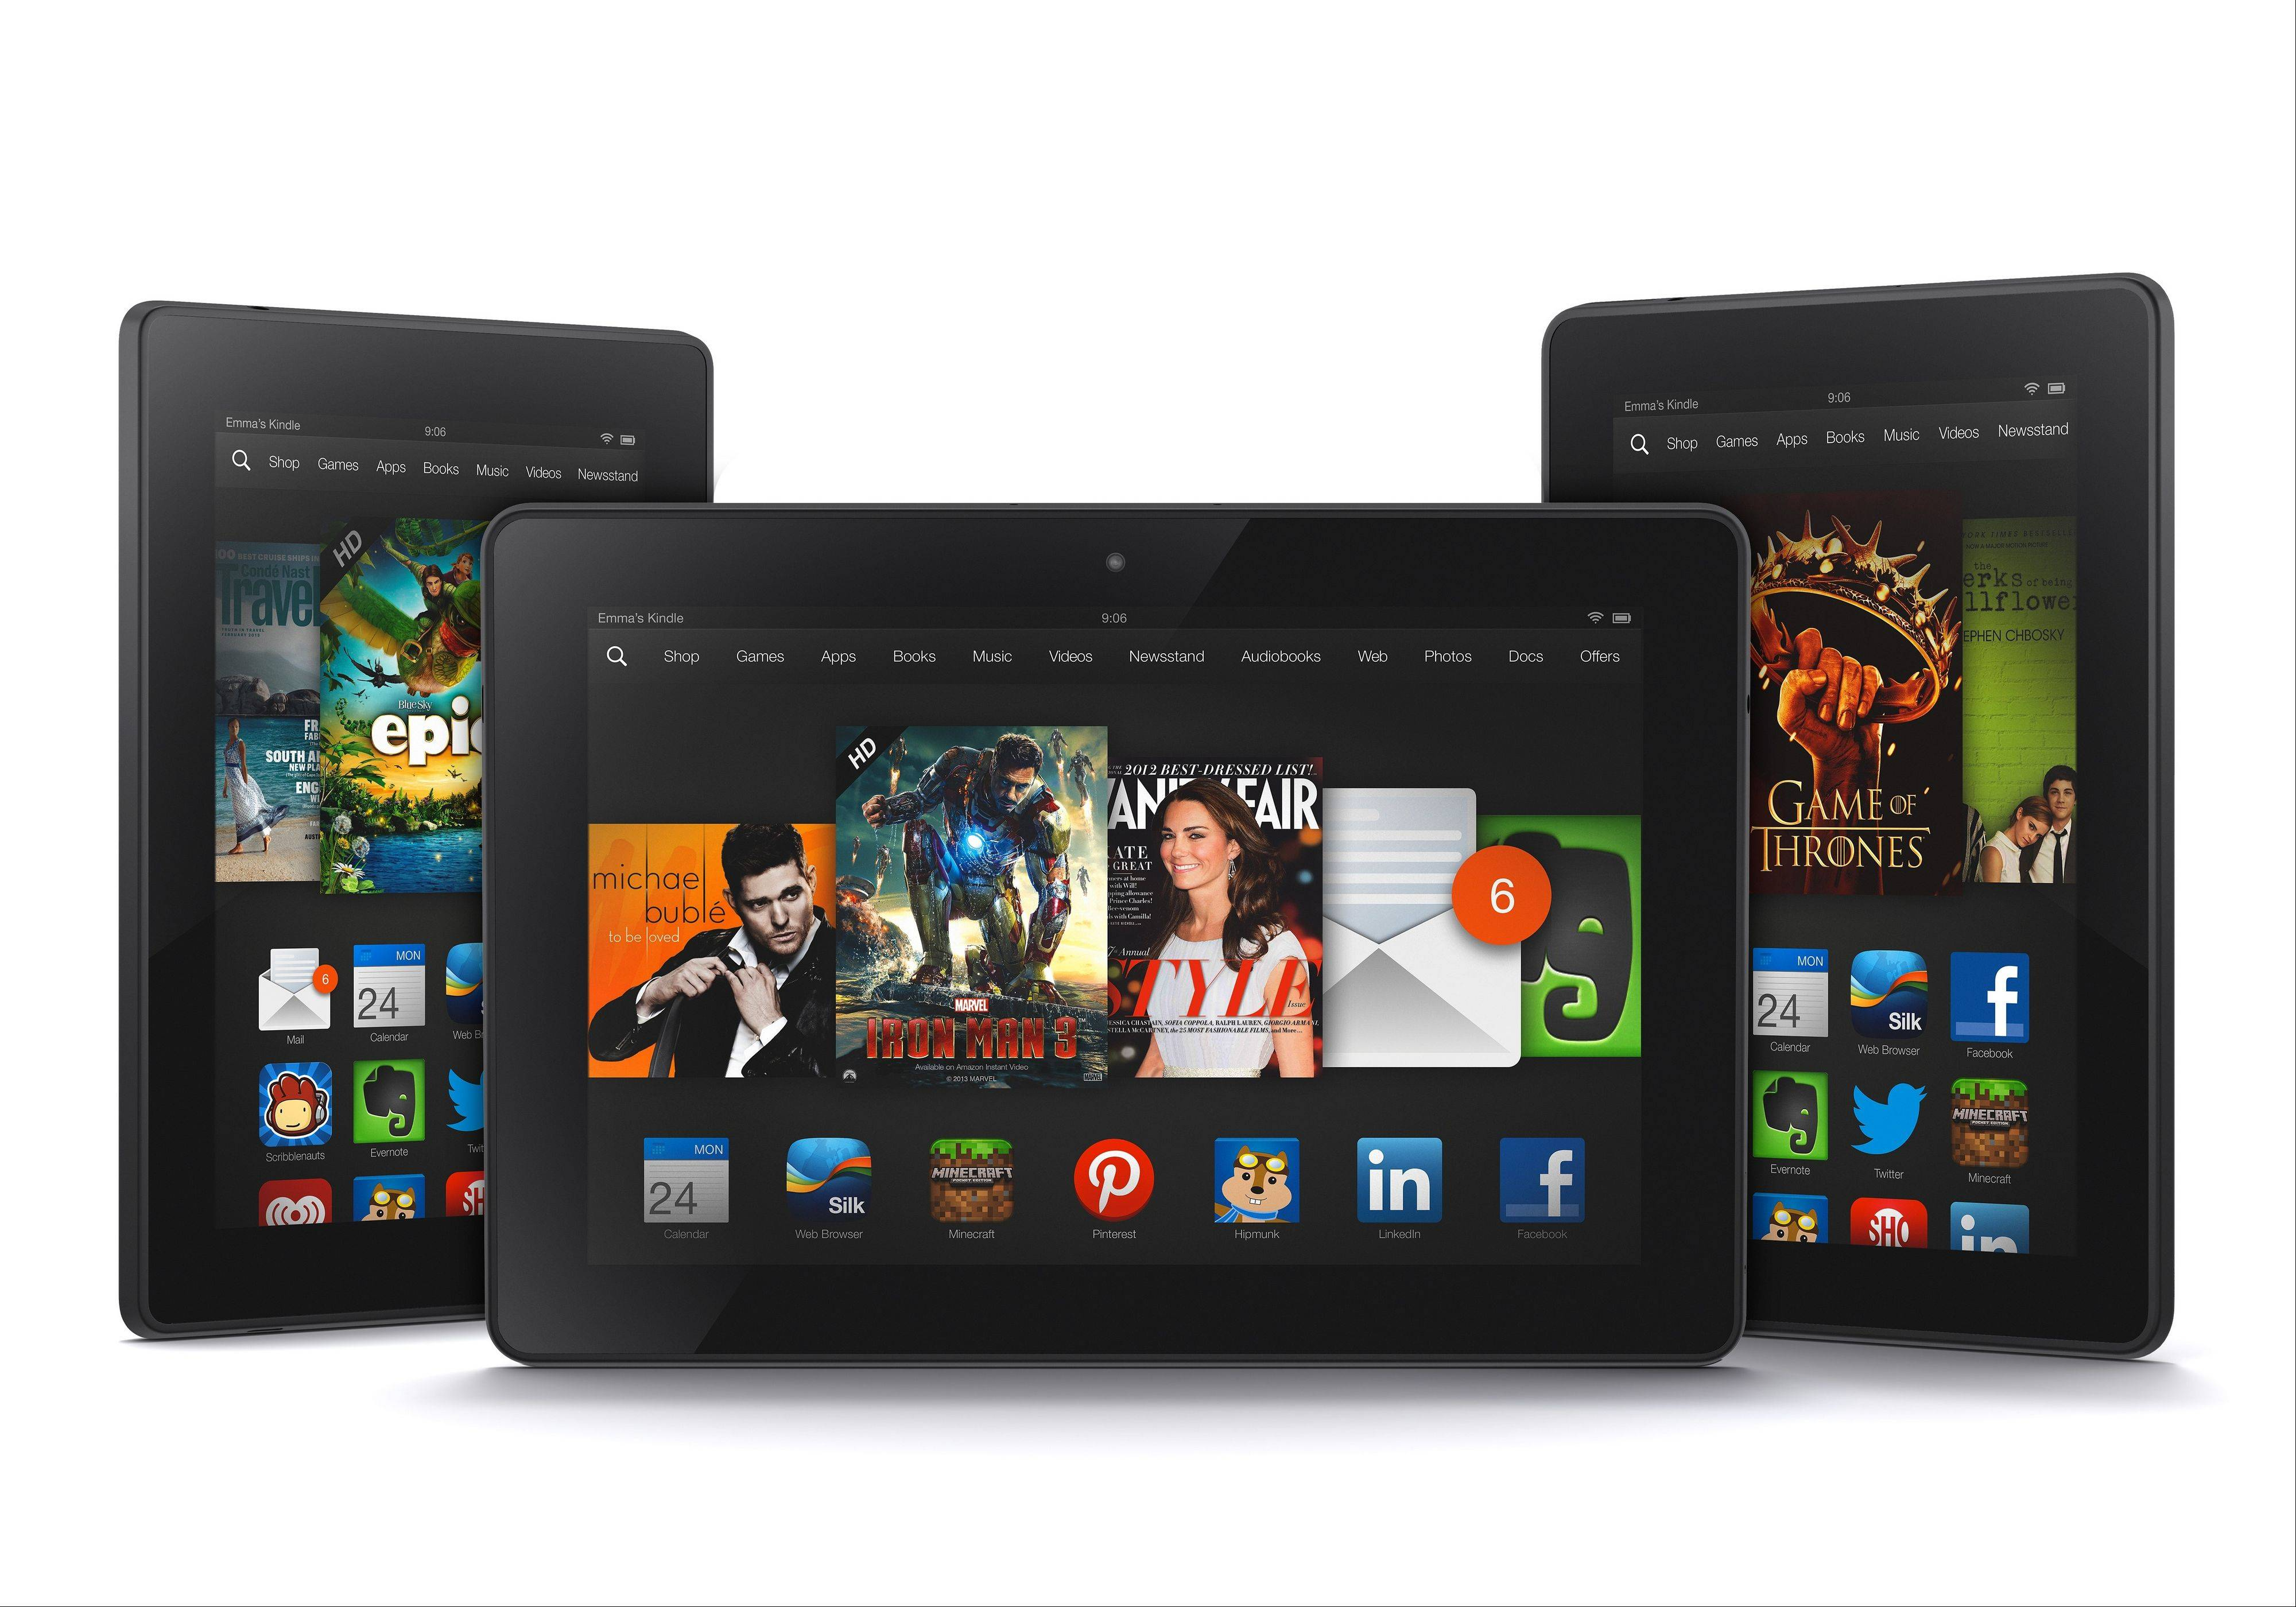 This product image provided by Amazon.com on Tuesday shows the new 8.9-inch Amazon Kindle HDX tablet computer, center, the 7-inch Kindle HDX, left, and the updated Kindle HD. Amazon has refreshed its lineup of tablets with new HDX devices, which are significantly faster and lighter than the previous generation.